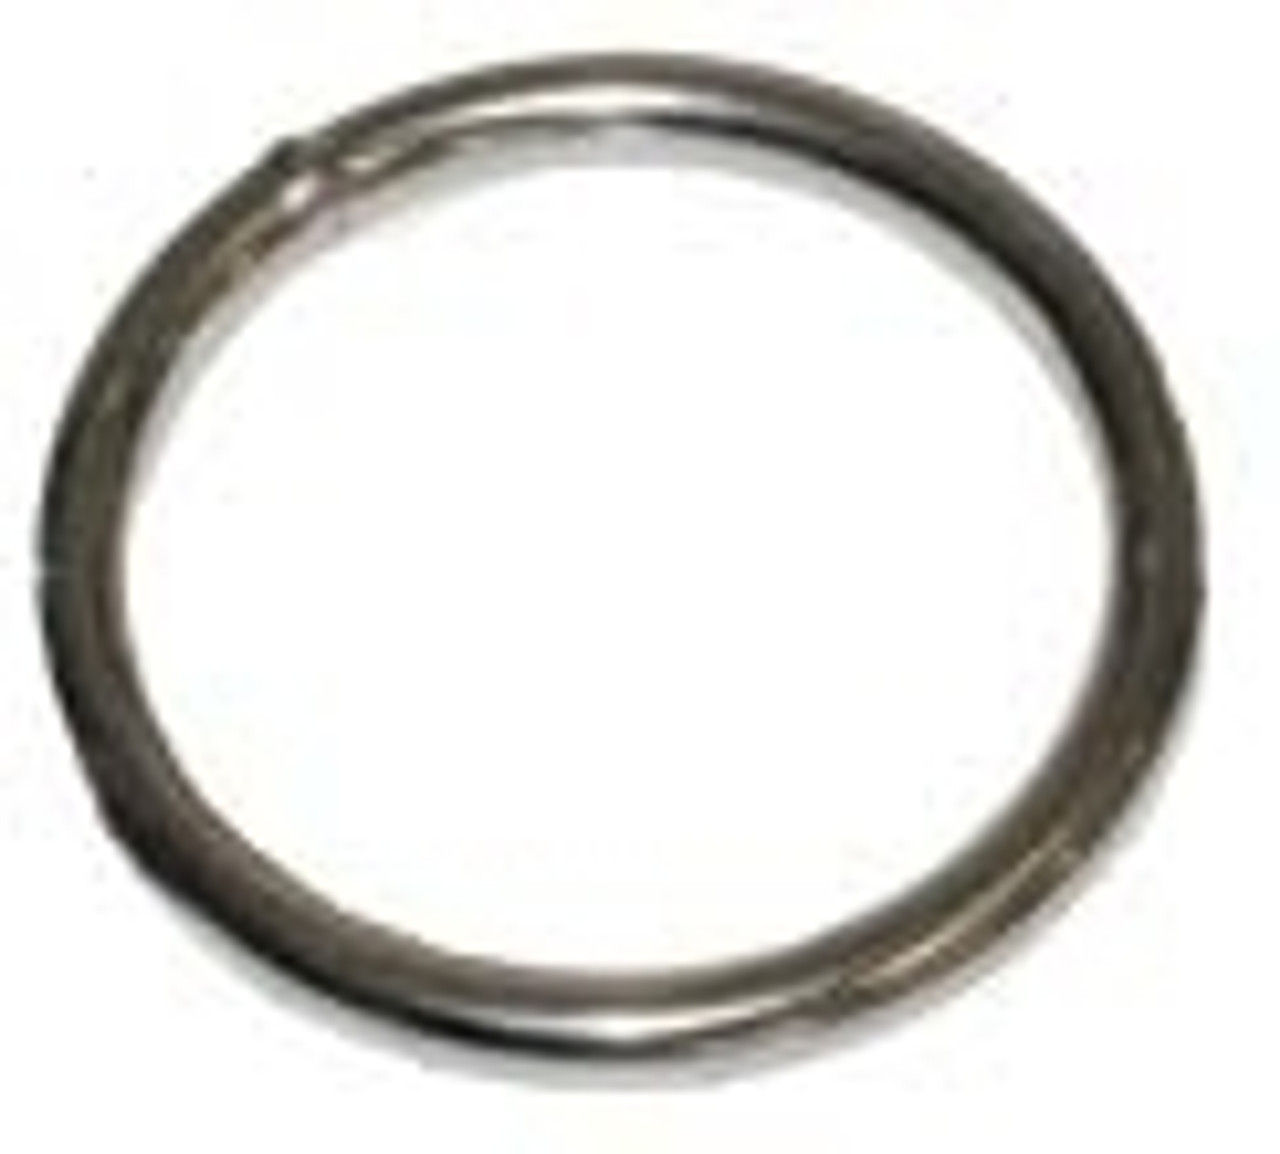 Metal Rings - Welded D Rings and Welded O Rings